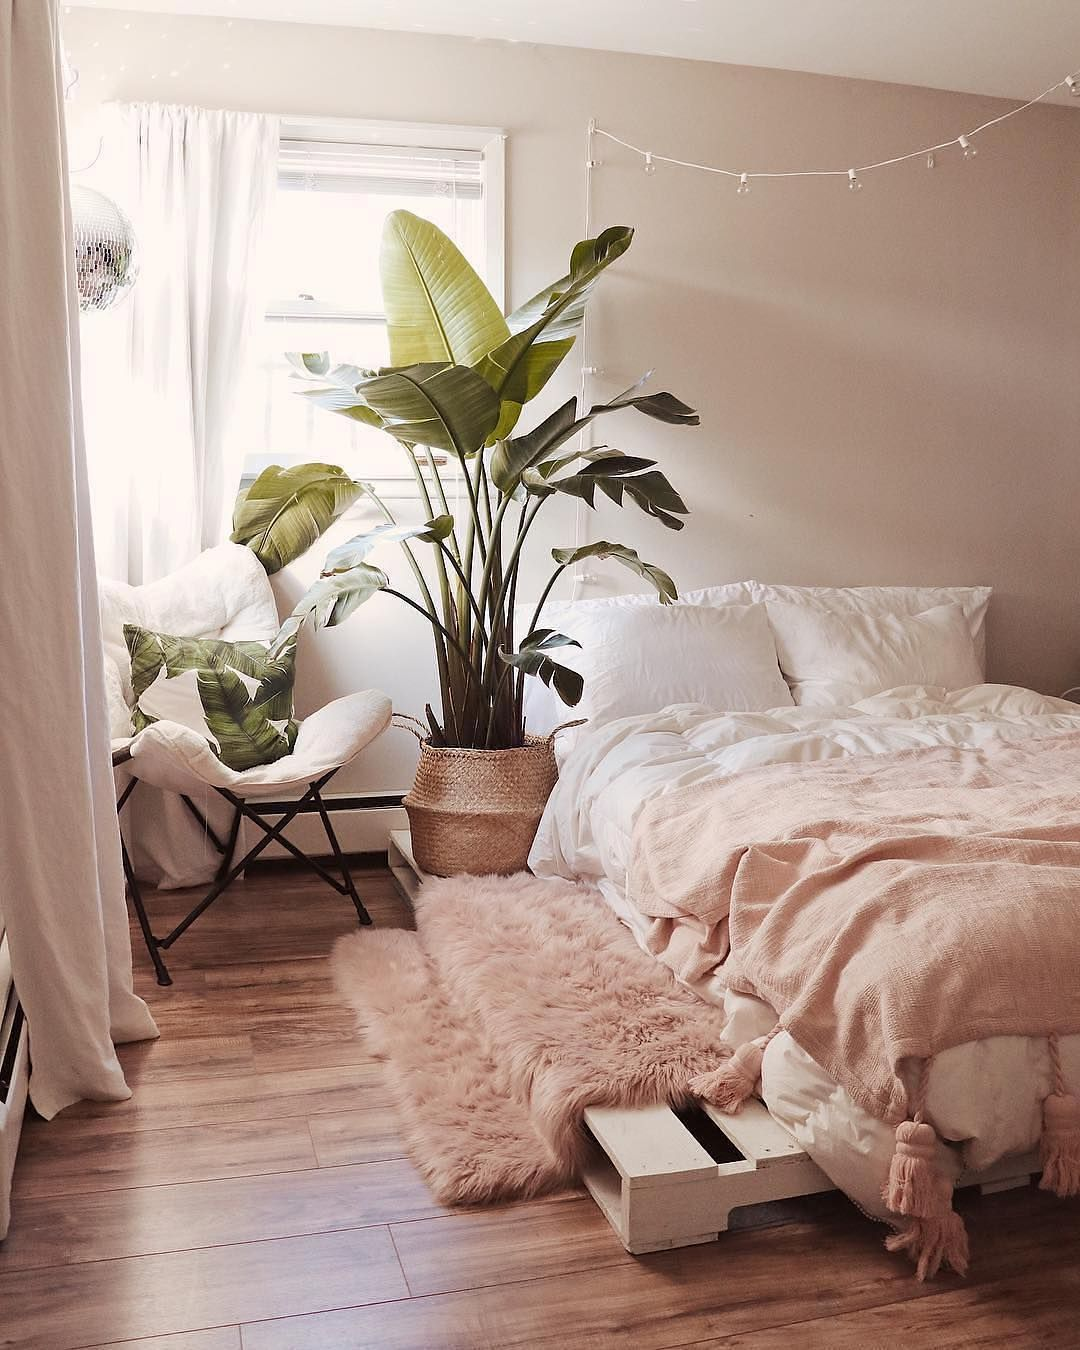 Super Cozy Scandinavian Bedroom With Soft Textiles In Pink Hue Floor Plant And Fluffy Rug Comfortable Bedroom Comfortable Bedroom Decor Bedroom Design